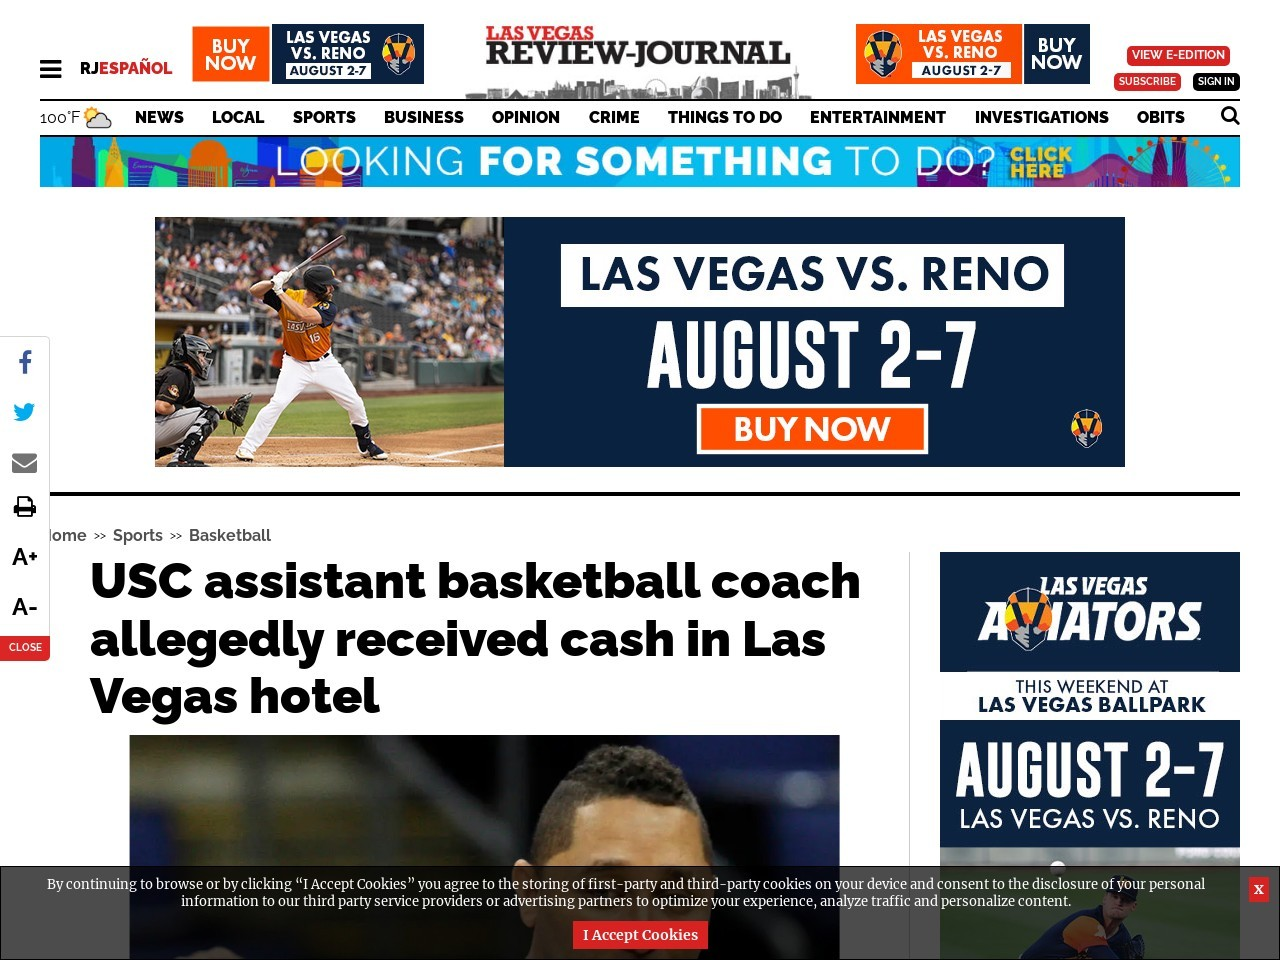 USC assistant basketball coach allegedly received cash in Las Vegas hotel